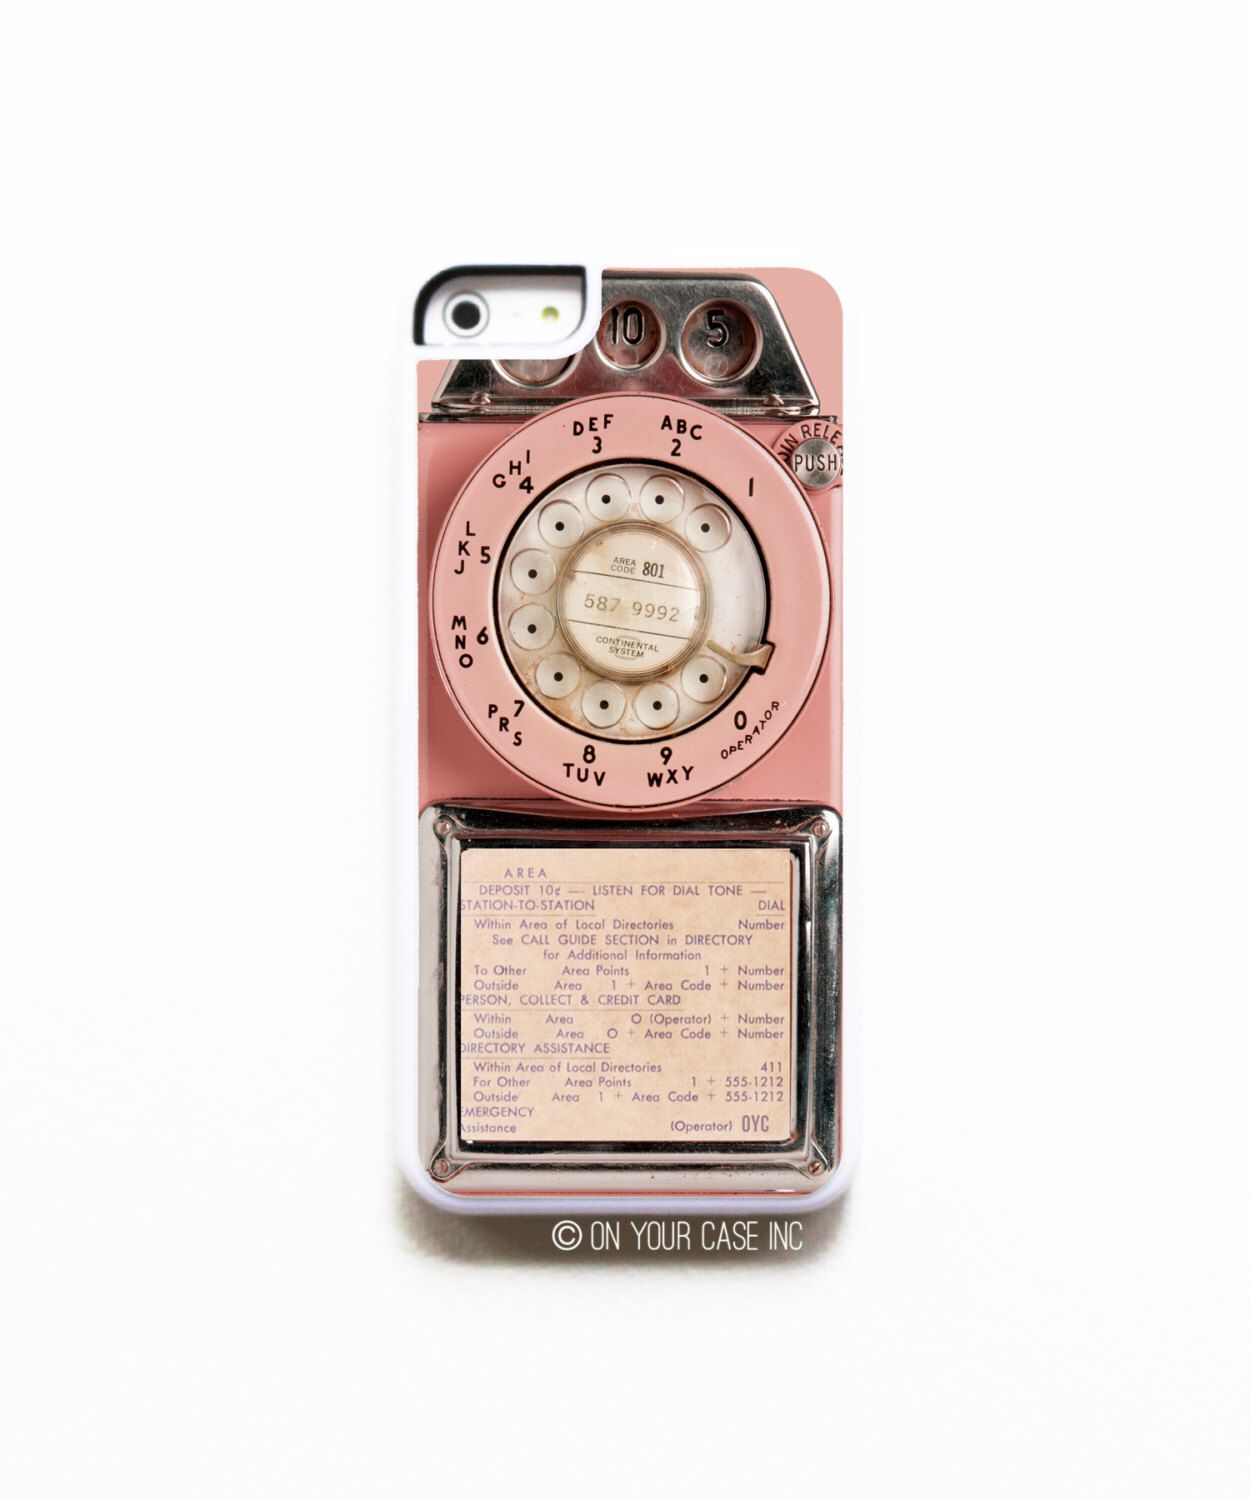 iphone 5c case vintage pink payphone case for iphone 5c phone case phone iphone pinterest. Black Bedroom Furniture Sets. Home Design Ideas